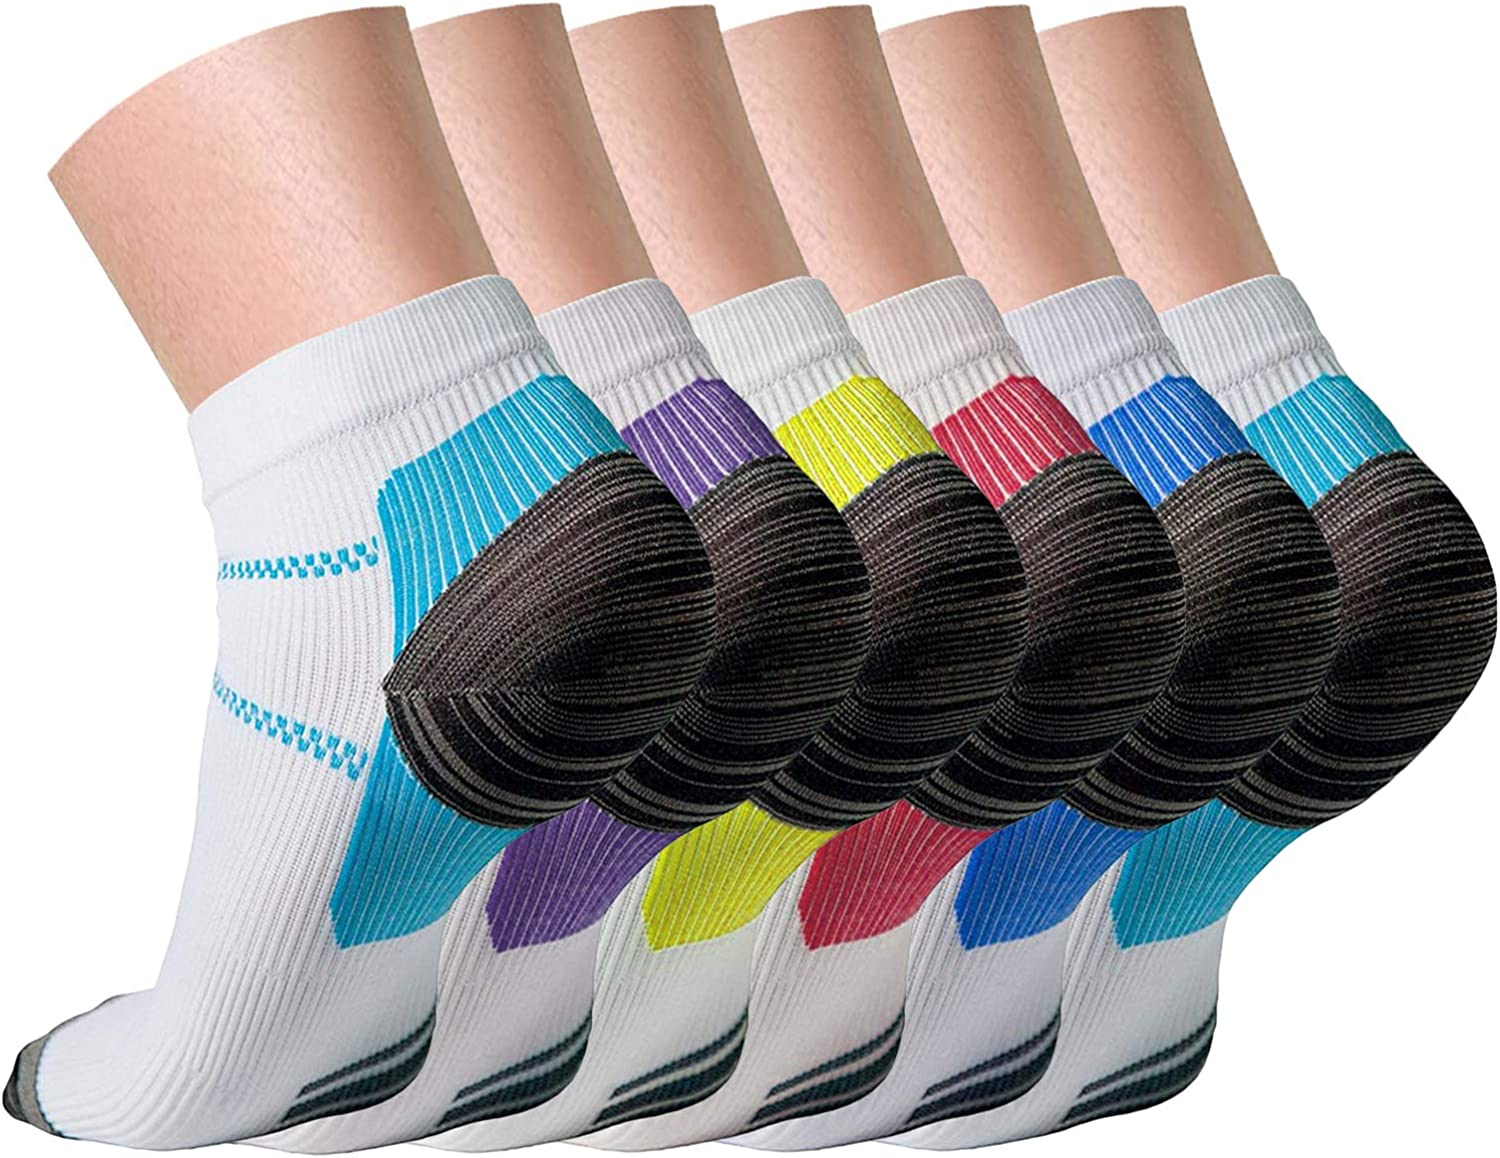 QUXIANG Compression Socks for Women and Men (3/6/7 Pairs) Arch Support Low Cut 15-20 mmHg is Best for Athletics, Running